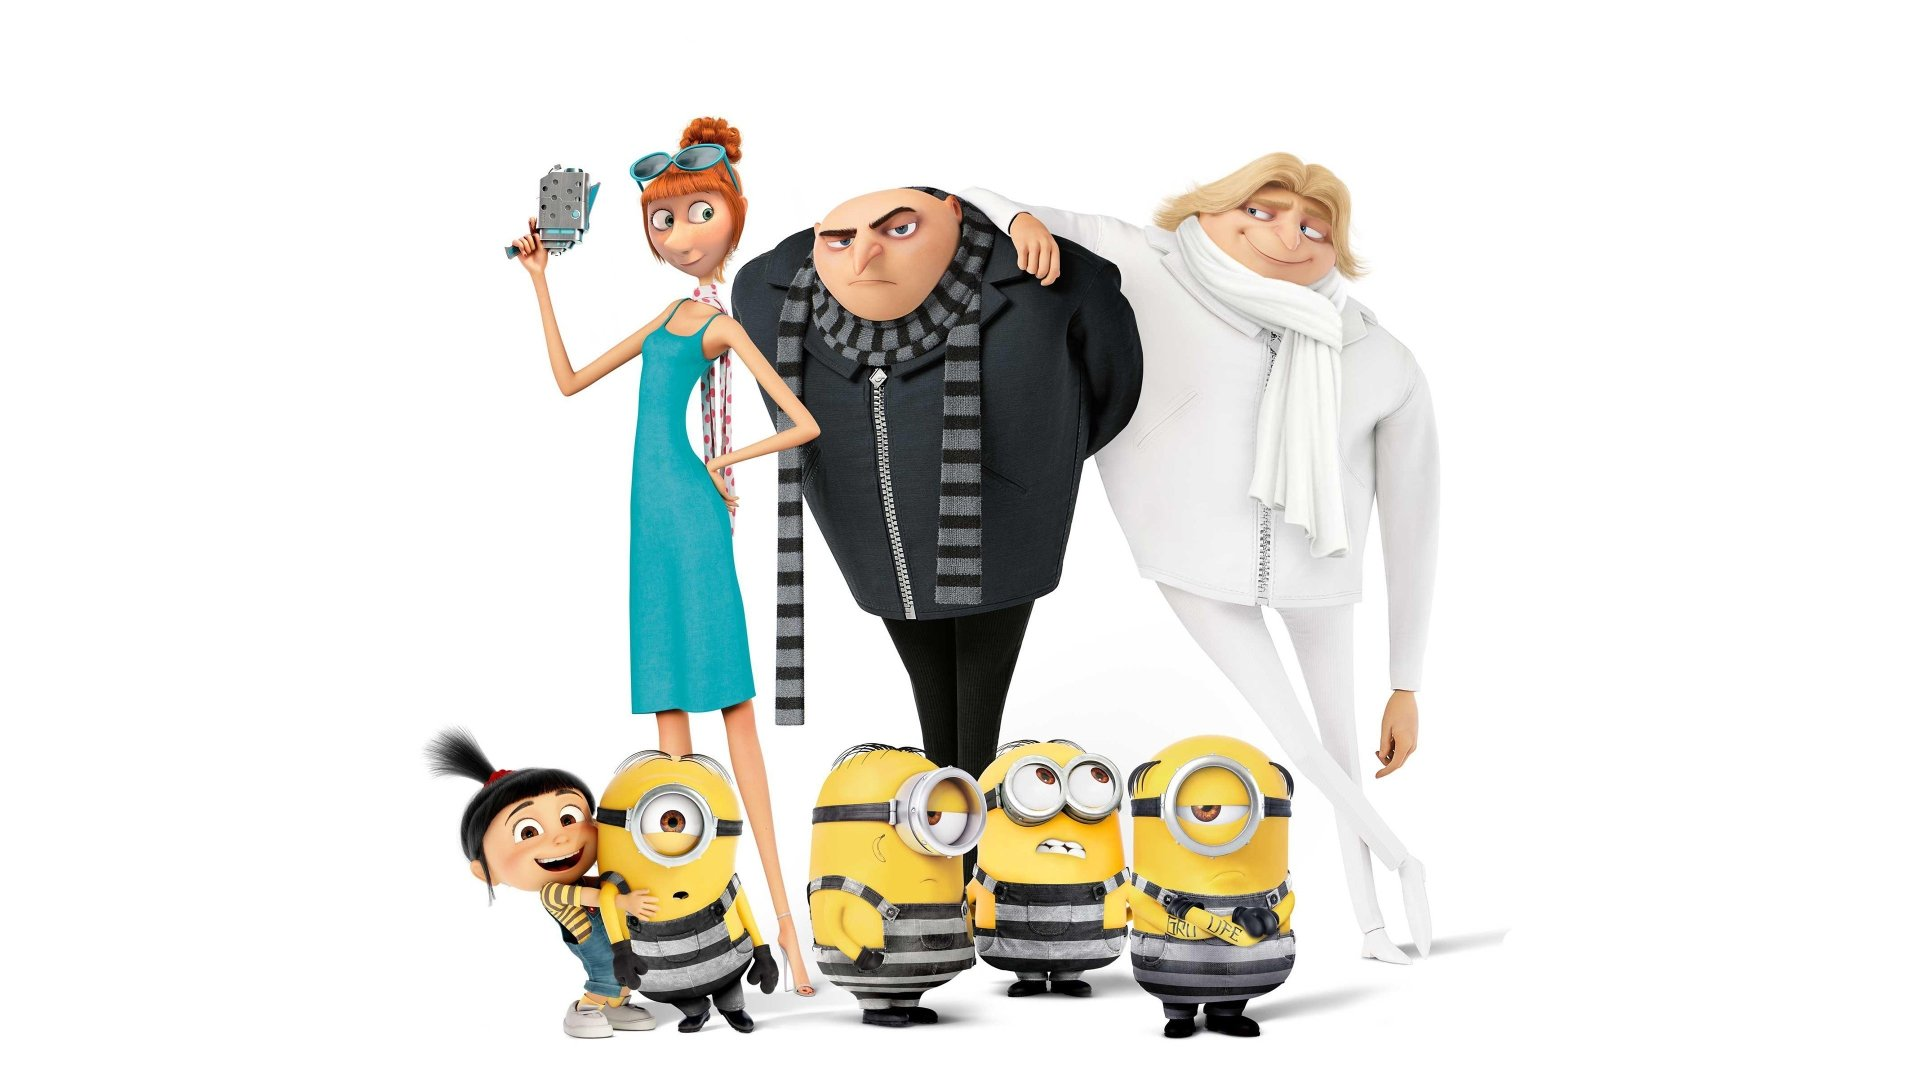 despicable me 3 hd wallpapers despicable me 3 wallpapers